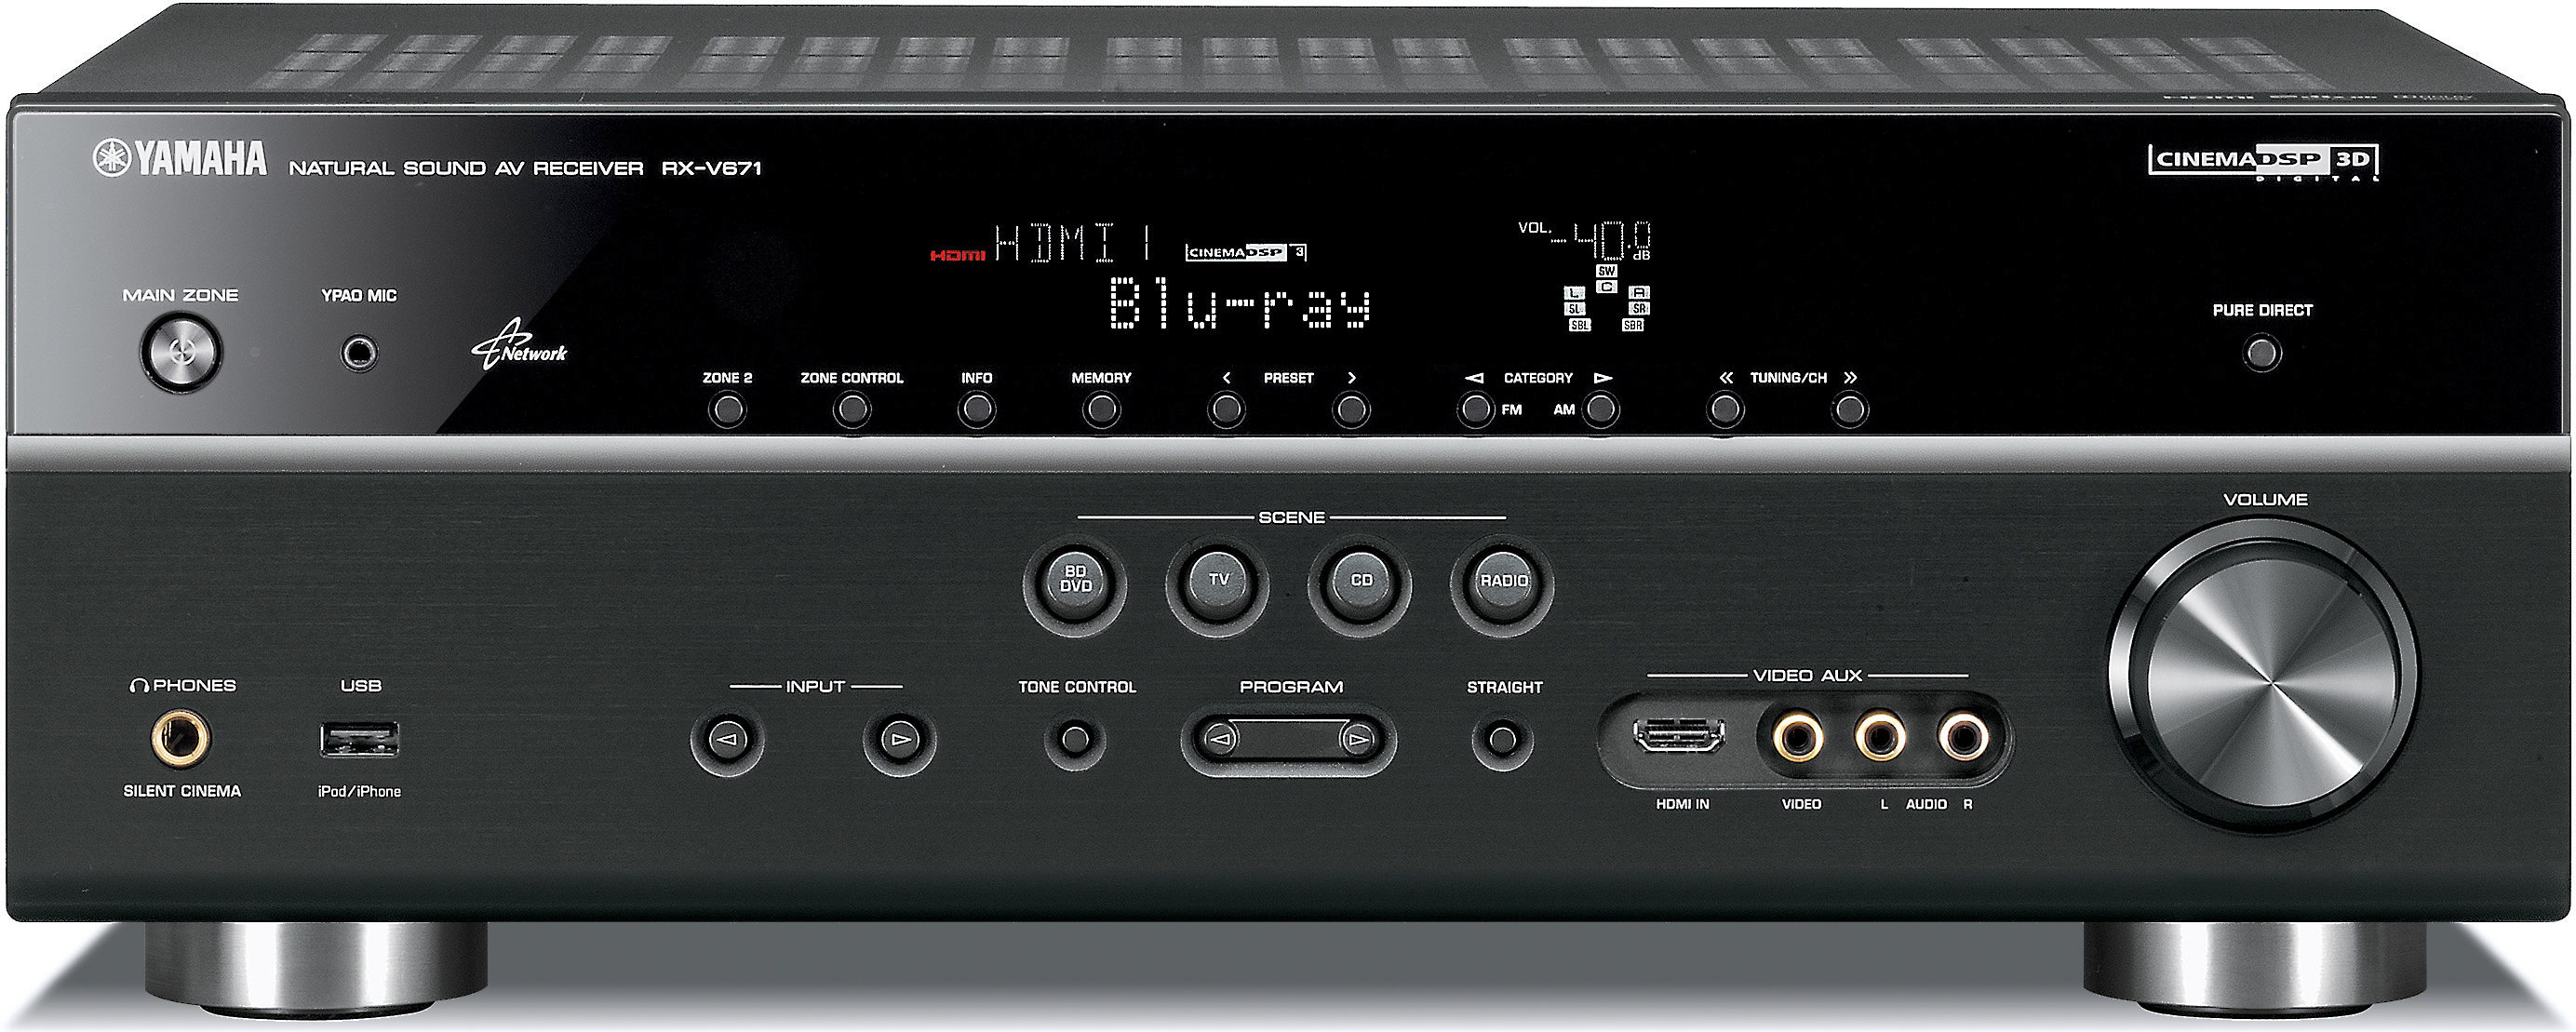 Yamaha Rx V671 Home Theater Receiver With 3d Ready Hdmi Switching Internet Ready At Crutchfield